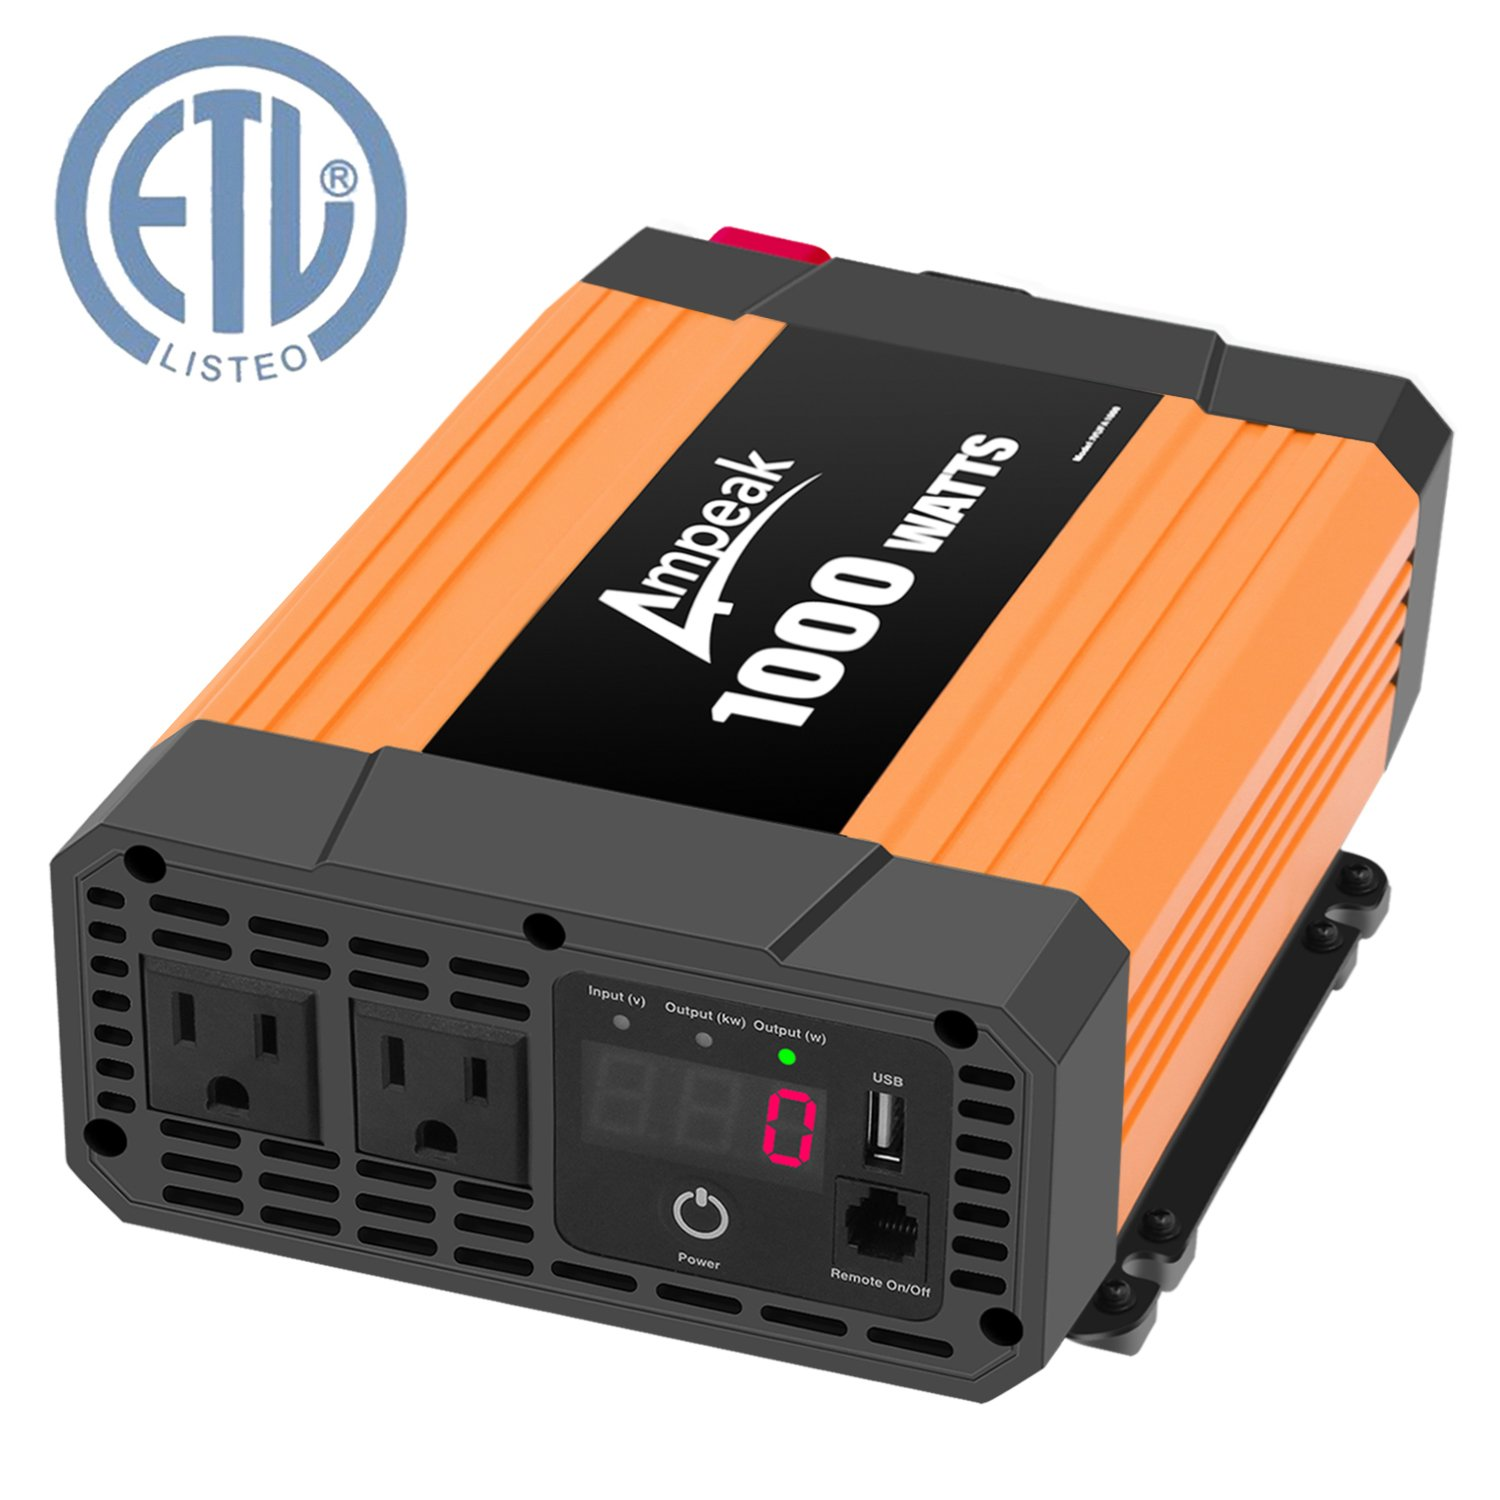 Ampeak 1000W Power Inverter 12V DC to 110V AC Dual AC Outlets 2.1A USB Car Inverter